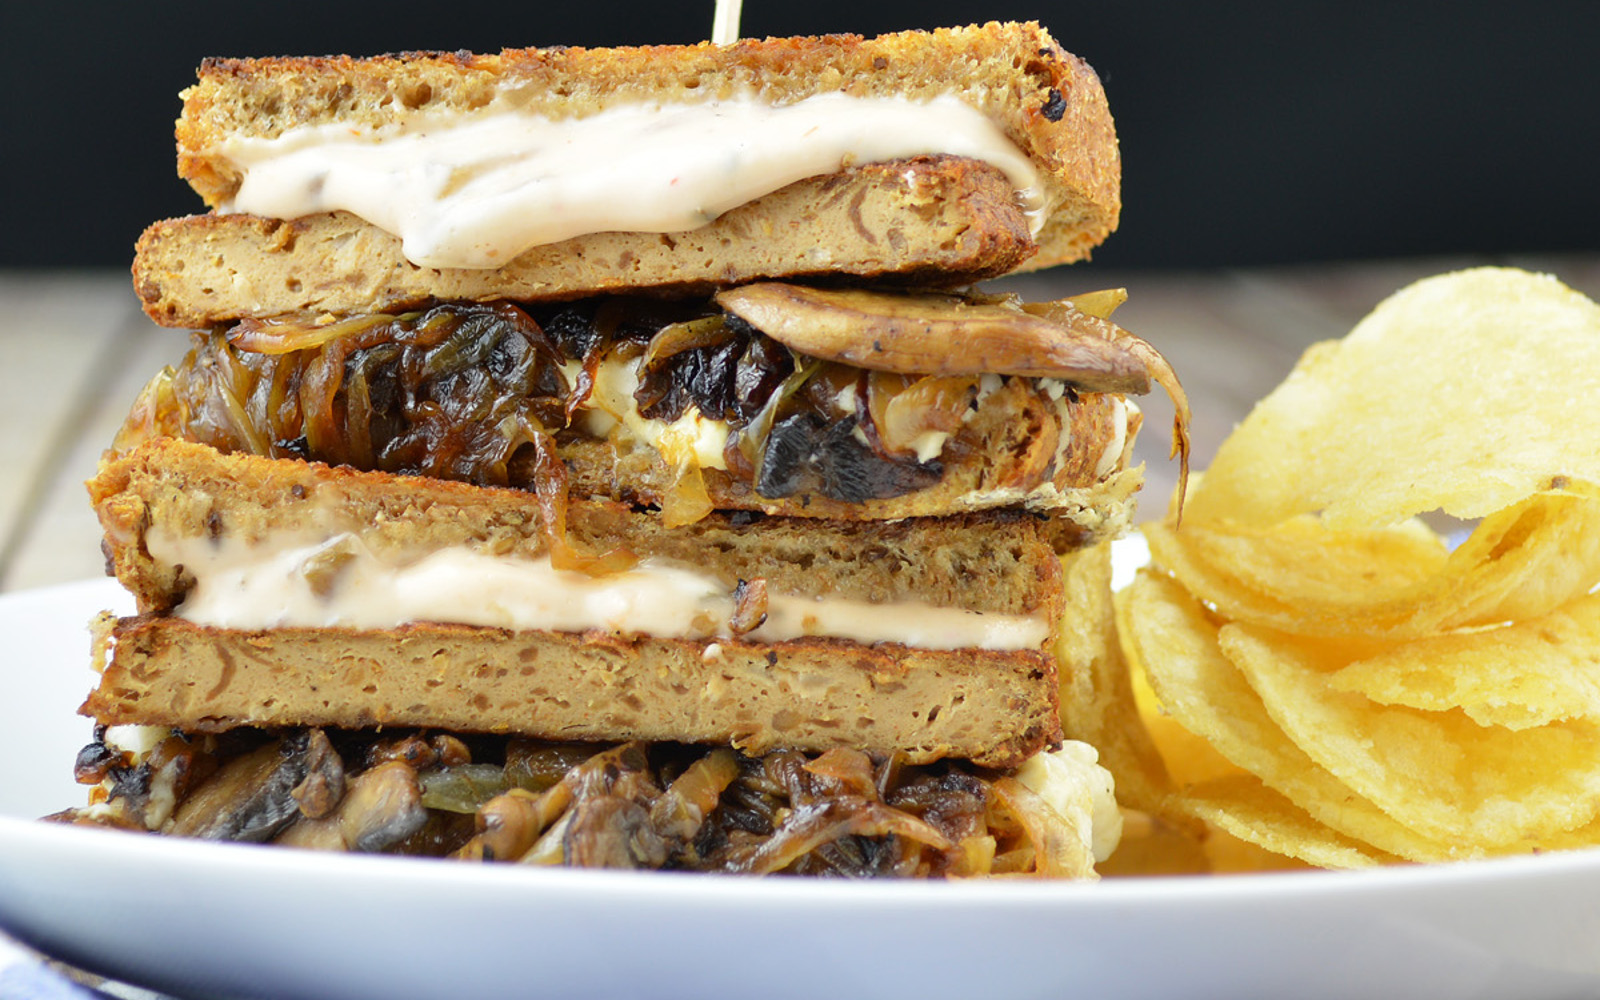 Vegan Premium Patty Melt With Mushrooms and Special Sauce